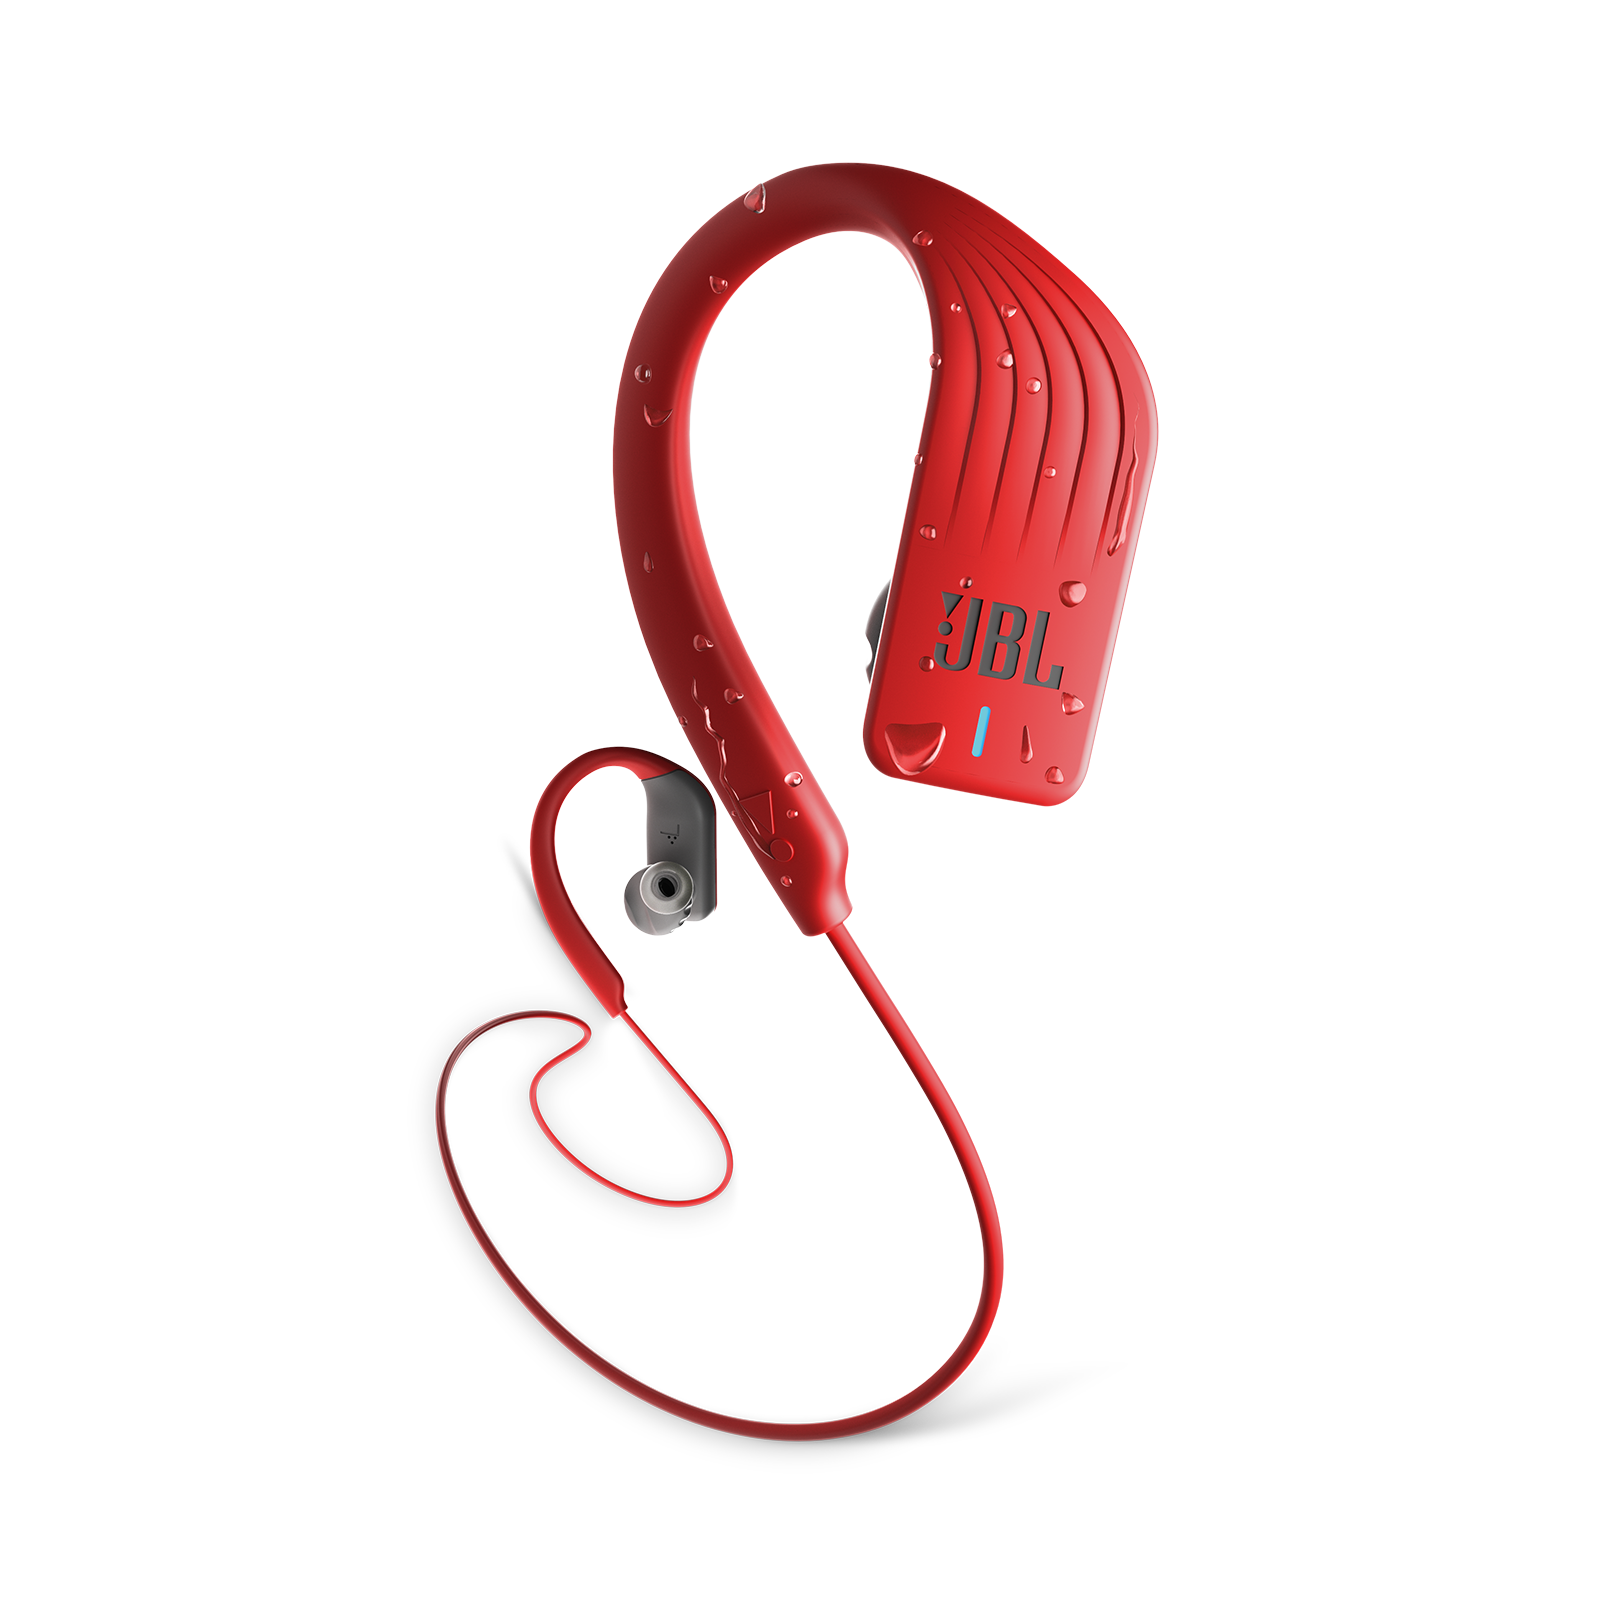 JBL Endurance SPRINT - Red - Waterproof Wireless In-Ear Sport Headphones - Hero